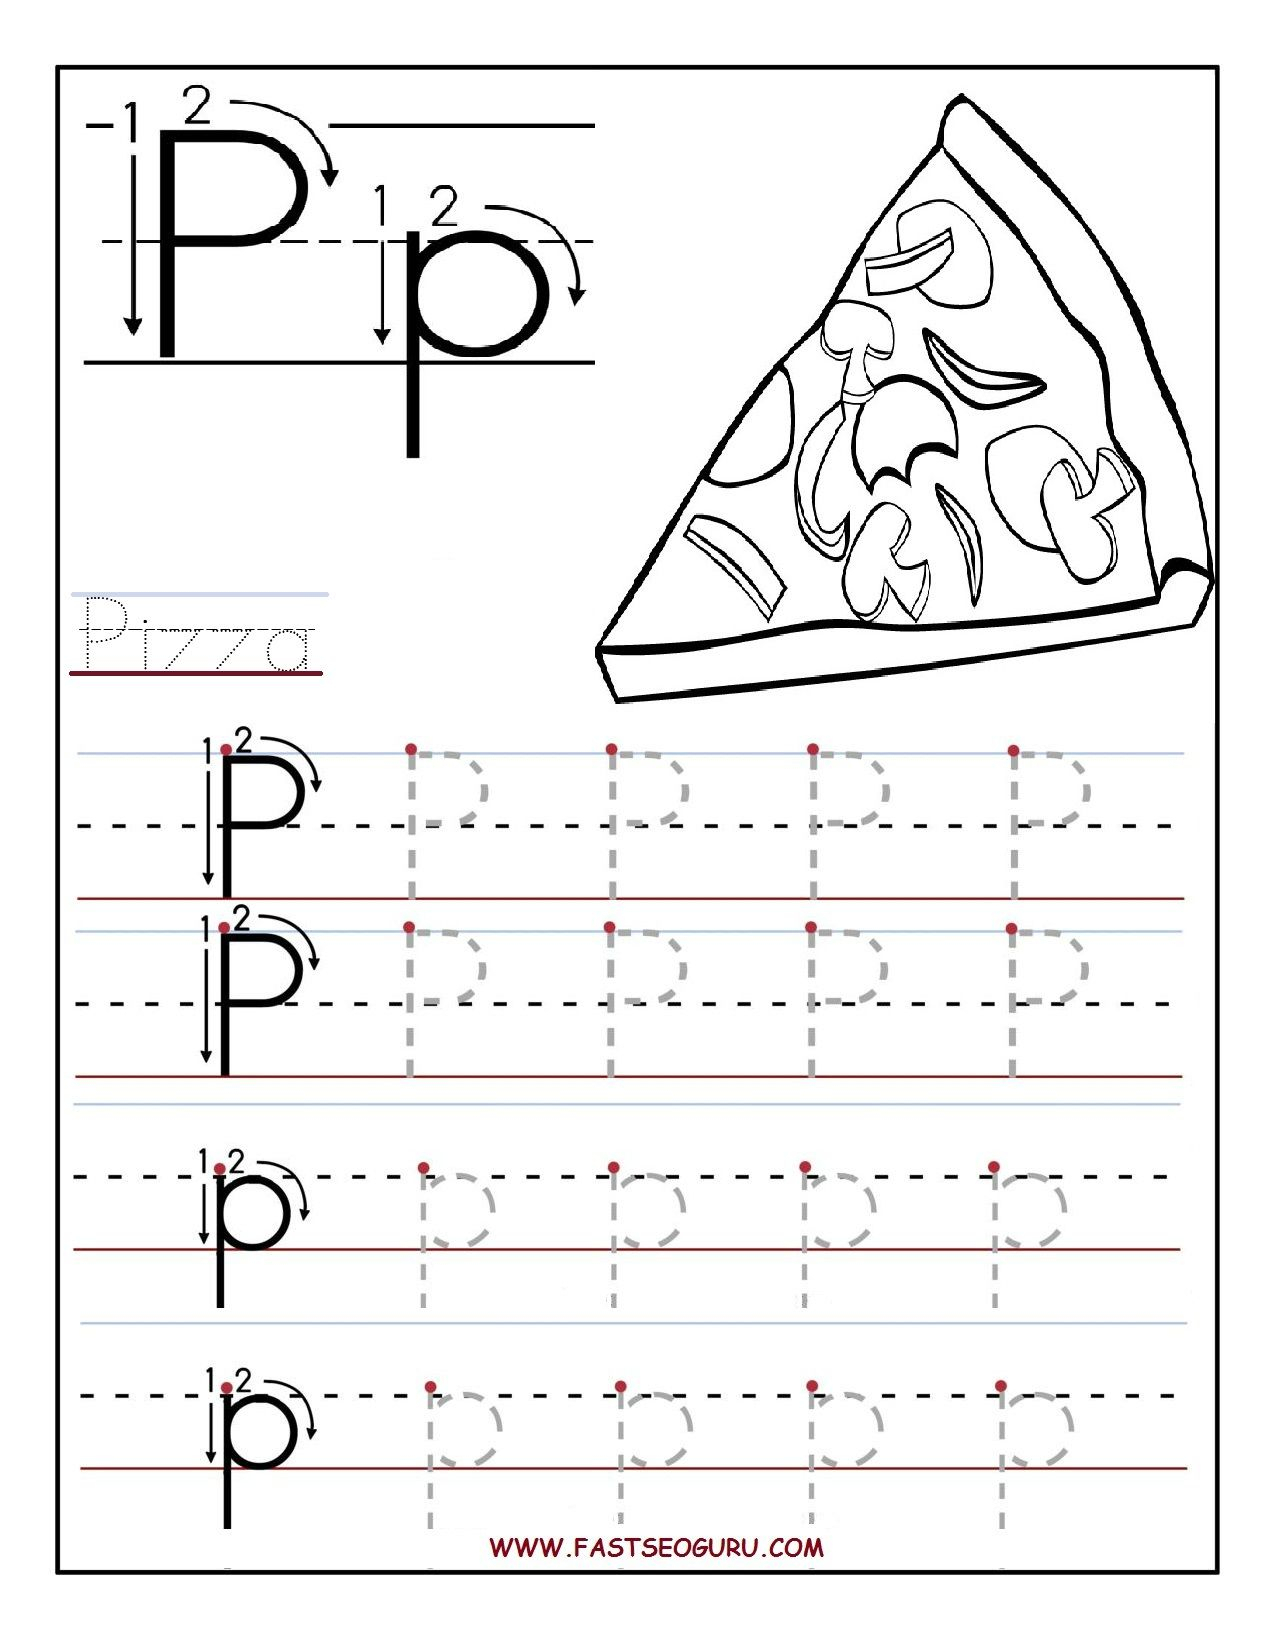 Printable Letter P Tracing Worksheets For Preschool for Letter P Tracing Page